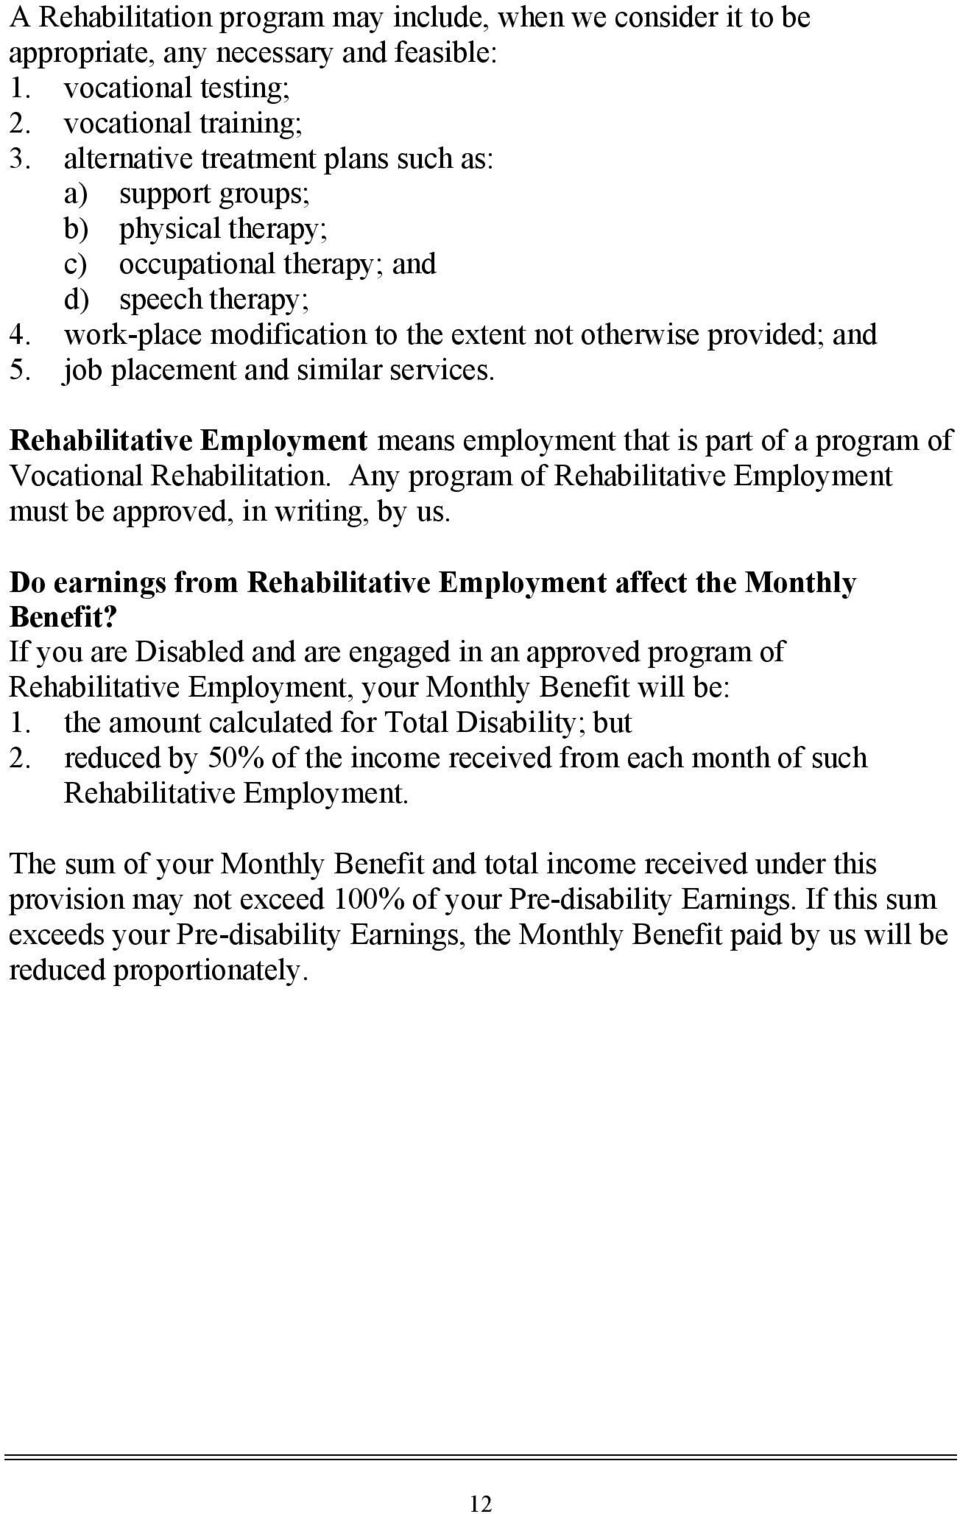 job placement and similar services. Rehabilitative Employment means employment that is part of a program of Vocational Rehabilitation.